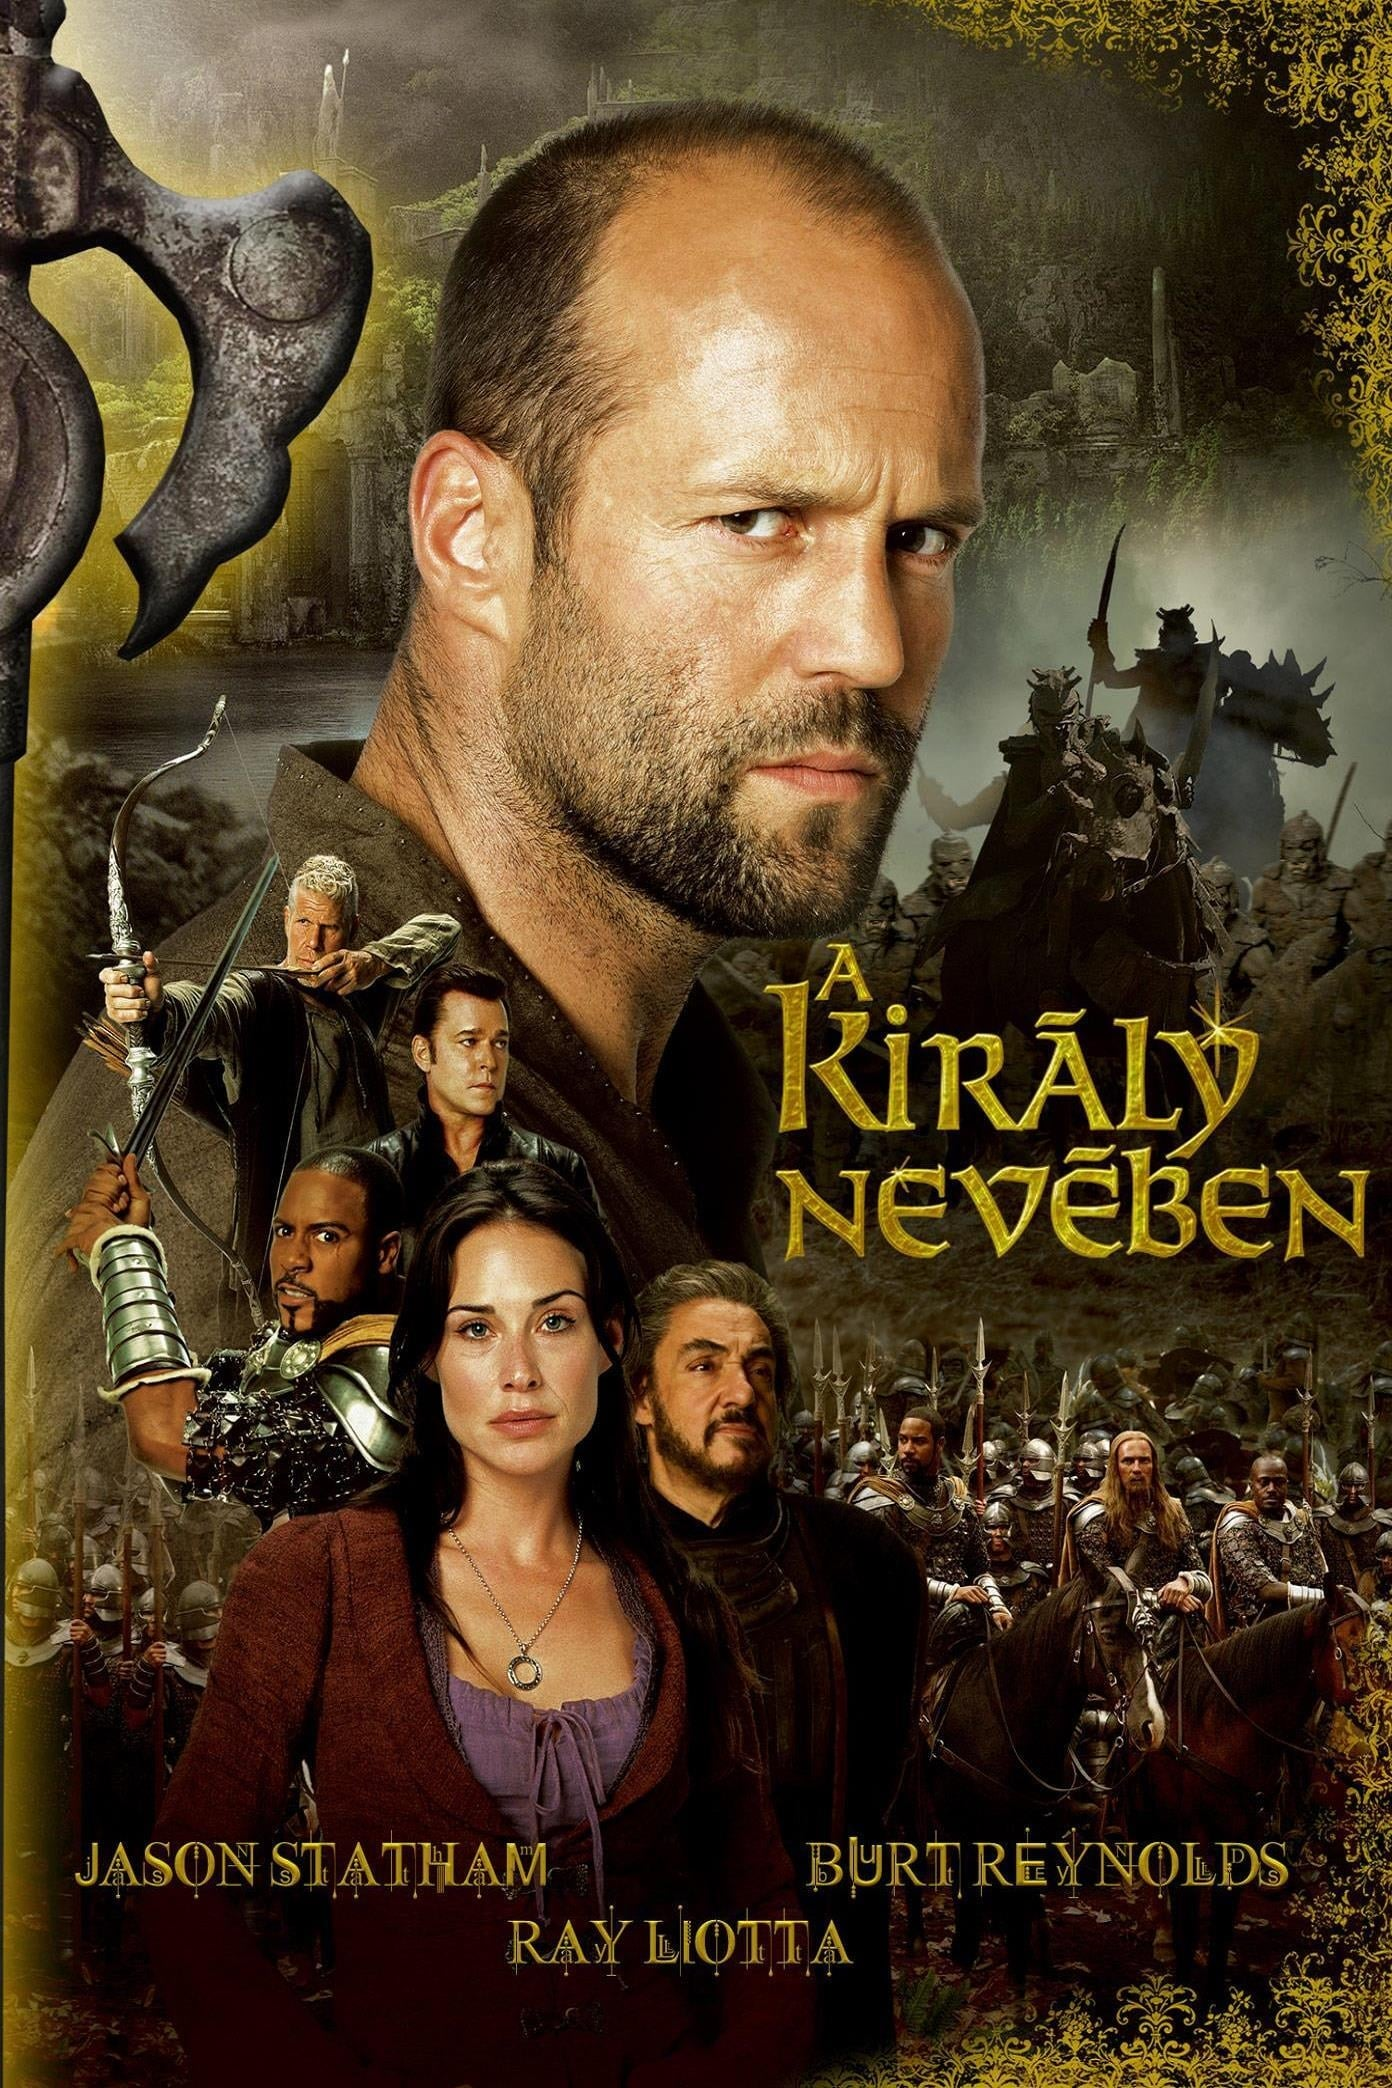 Watch In the Name of the King: A Dungeon Siege Tale (2007